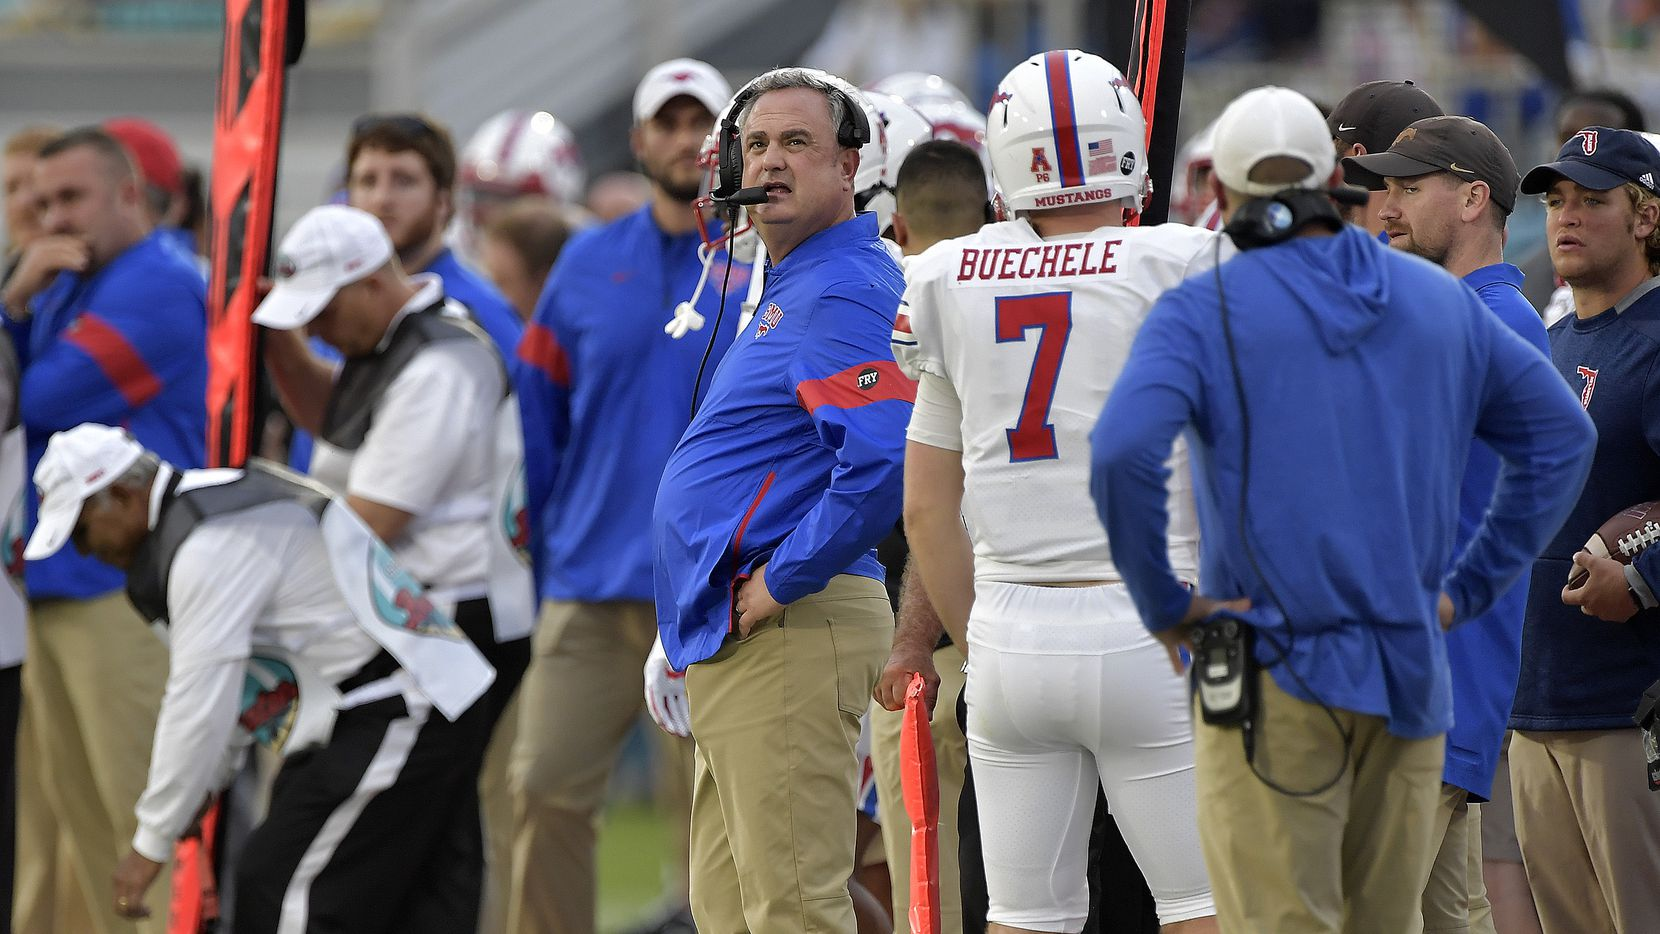 SMU coach Sonny Dykes, center, looks up at the scoreboard during the first half of the Boca Raton Bowl NCAA college football game against Florida Atlantic, Saturday, Dec. 21, 2019, in Boca Raton, Fla. (Michael Laughlin/South Florida Sun-Sentinel via AP)